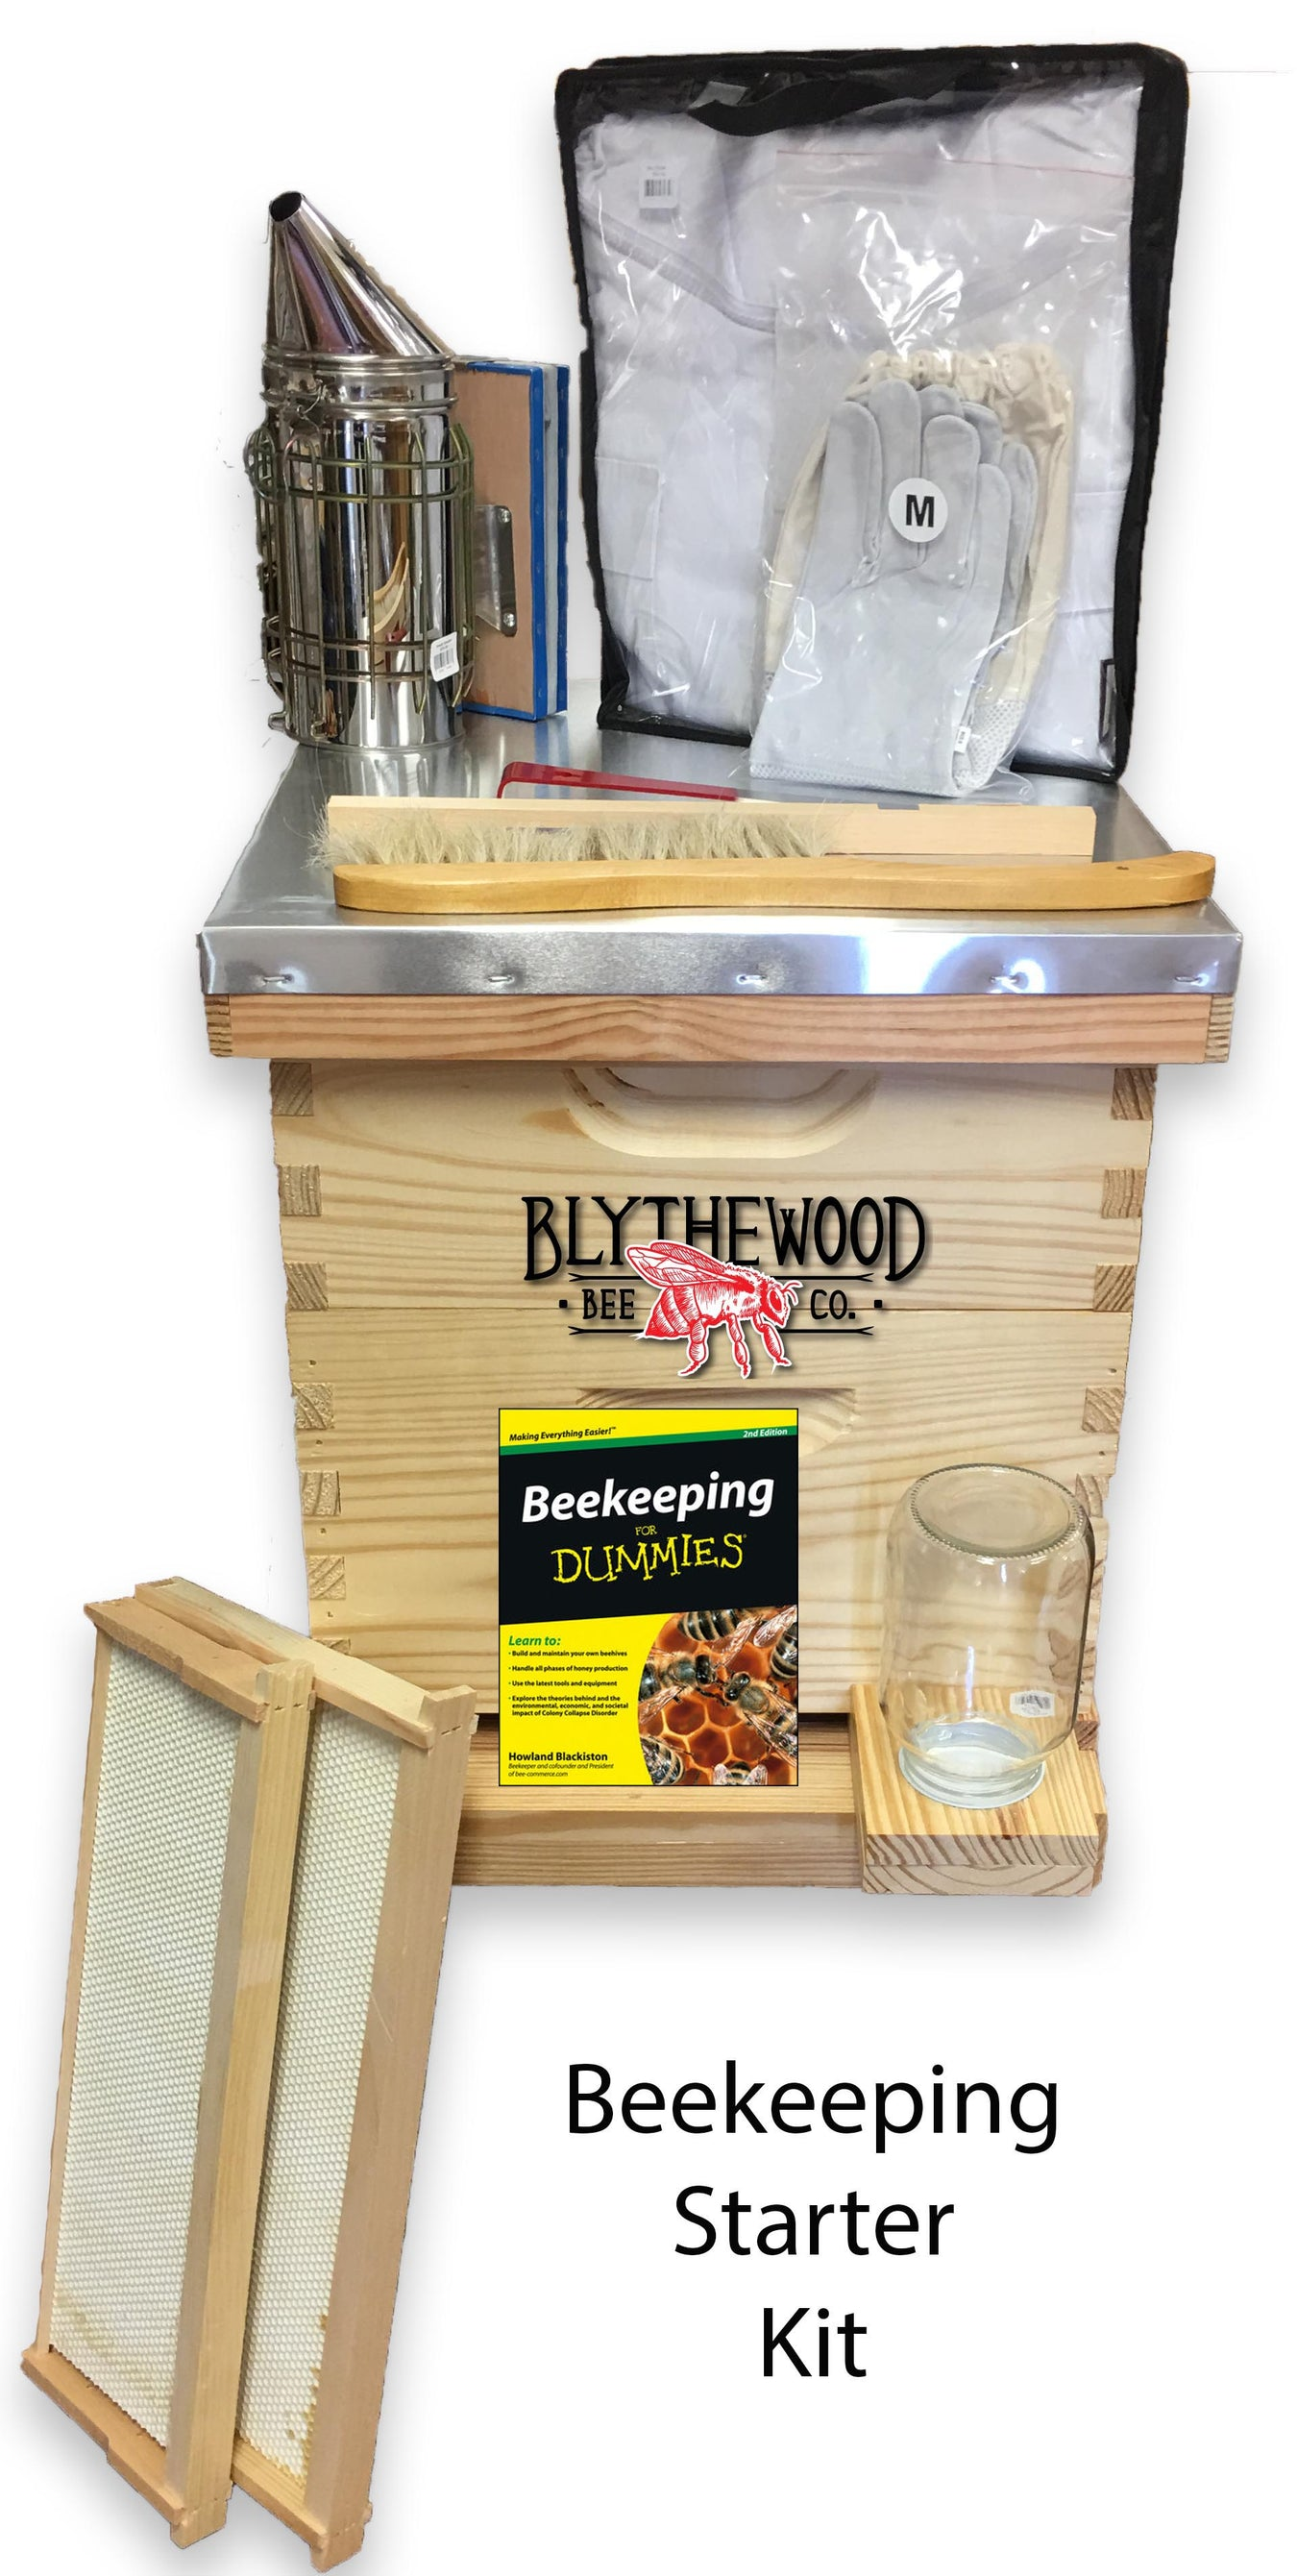 Beginner Beekeeping Kits